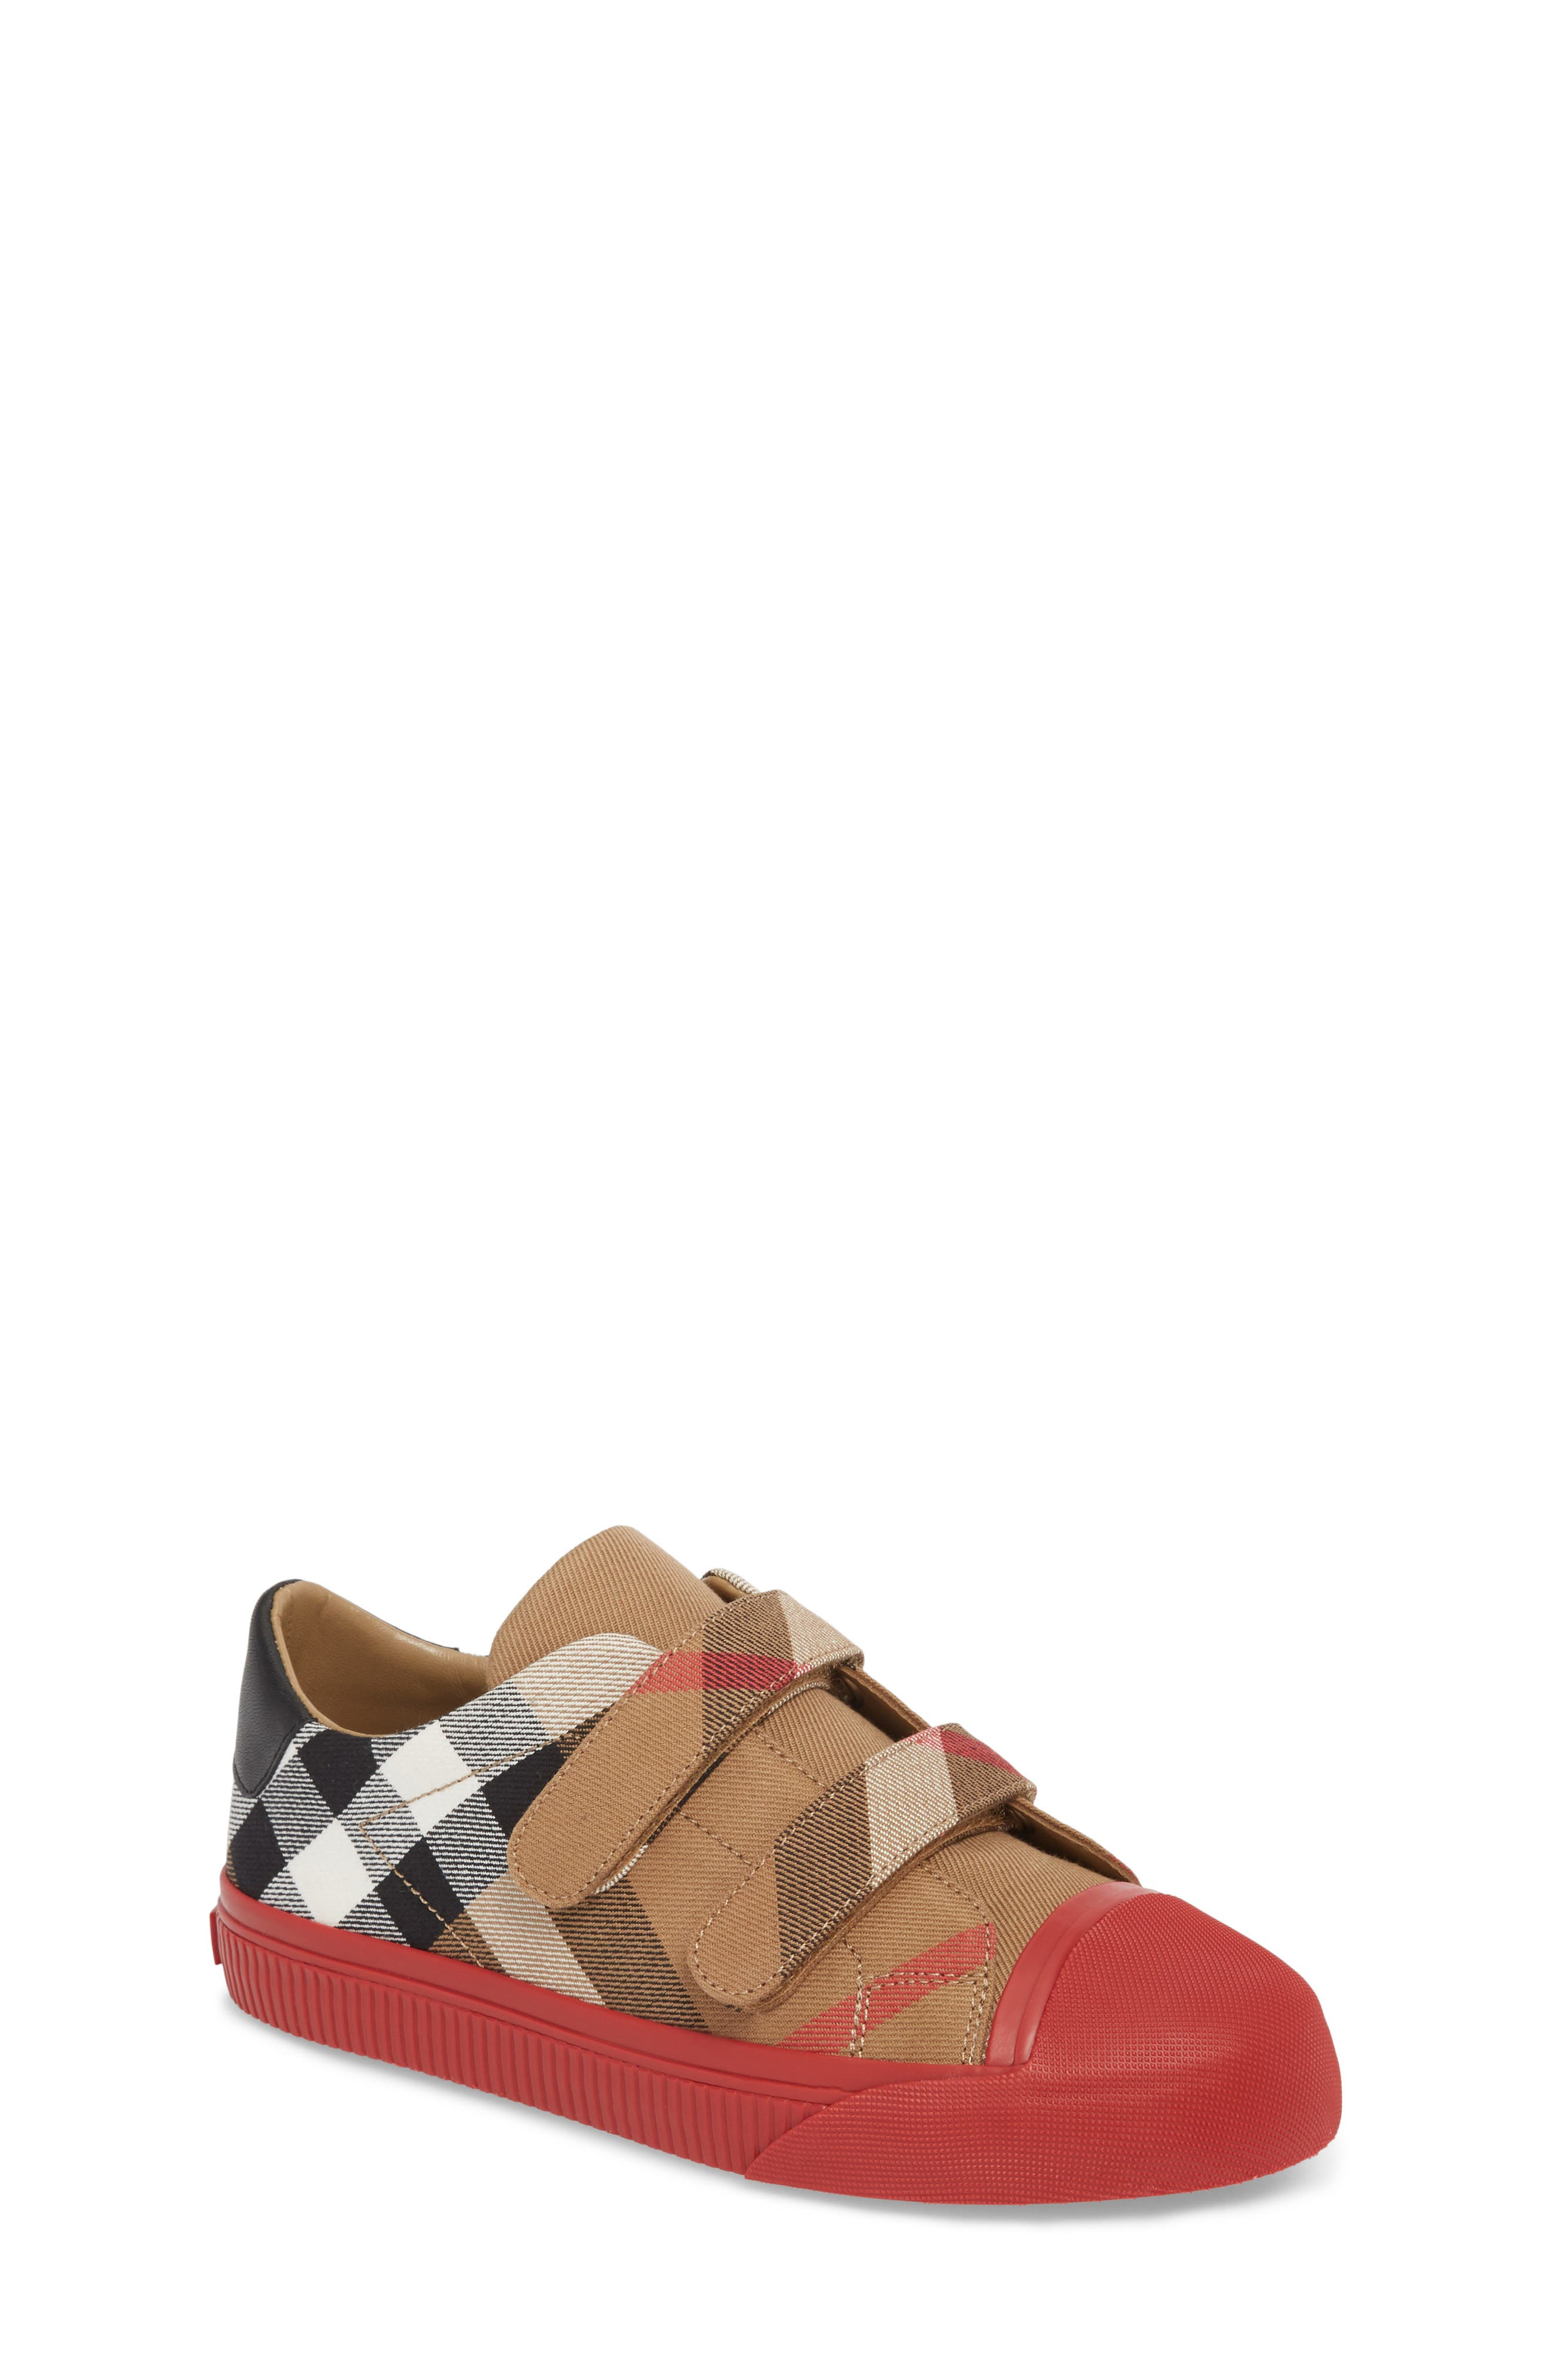 Belside Sneaker,                             Main thumbnail 1, color,                             Classic/ Parade Red